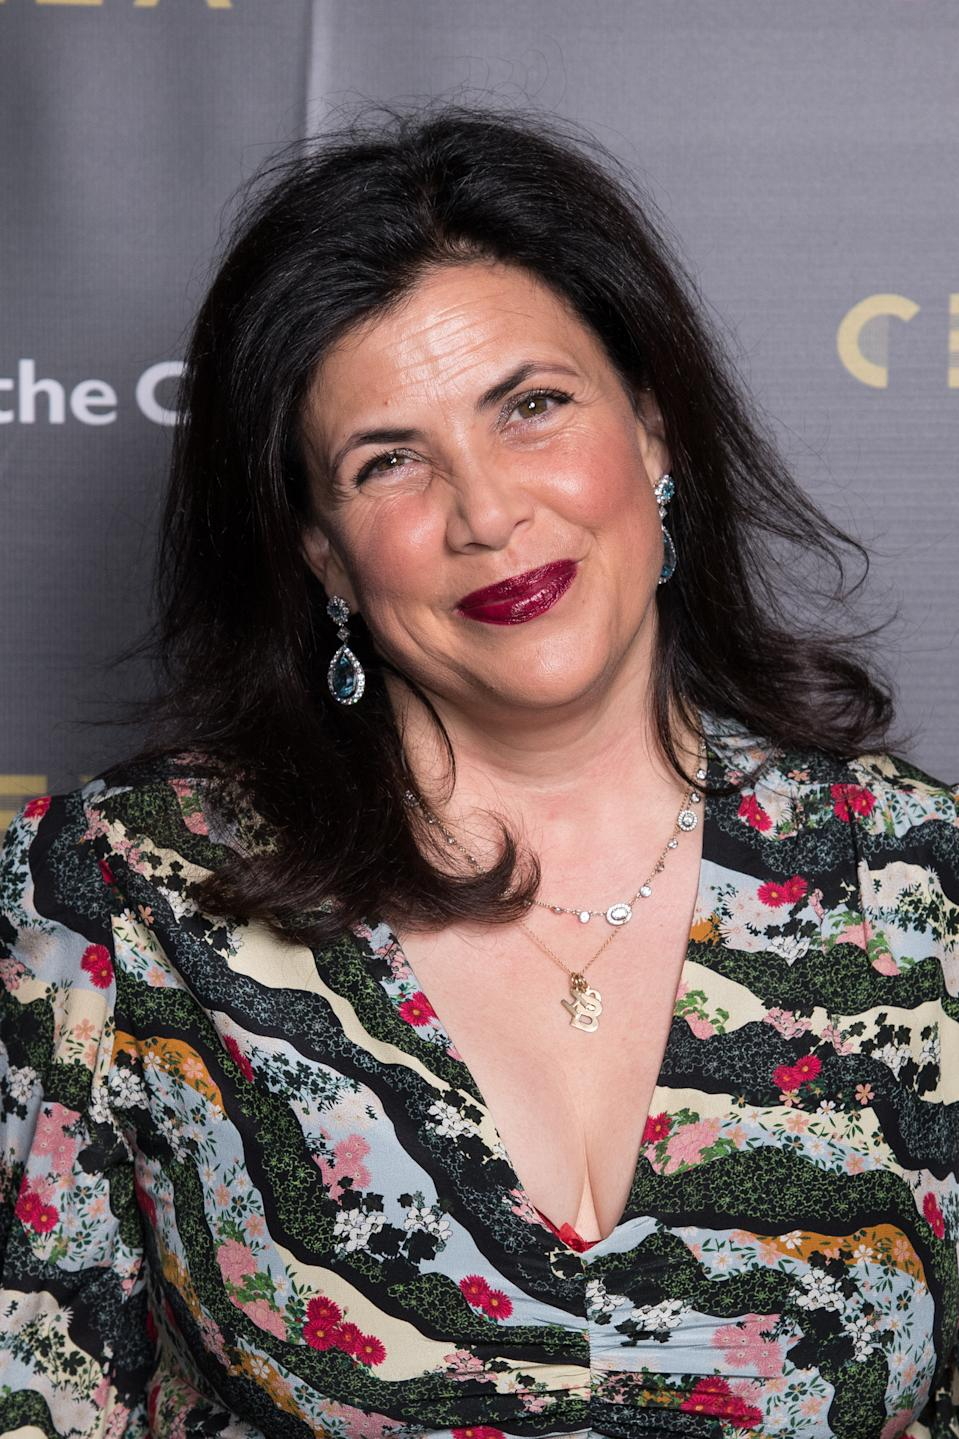 Kirstie Allsopp attends the Save The Children: Centenary Gala at The Roundhouse on May 09, 2019 in London, England. (Photo by Jeff Spicer/Getty Images)